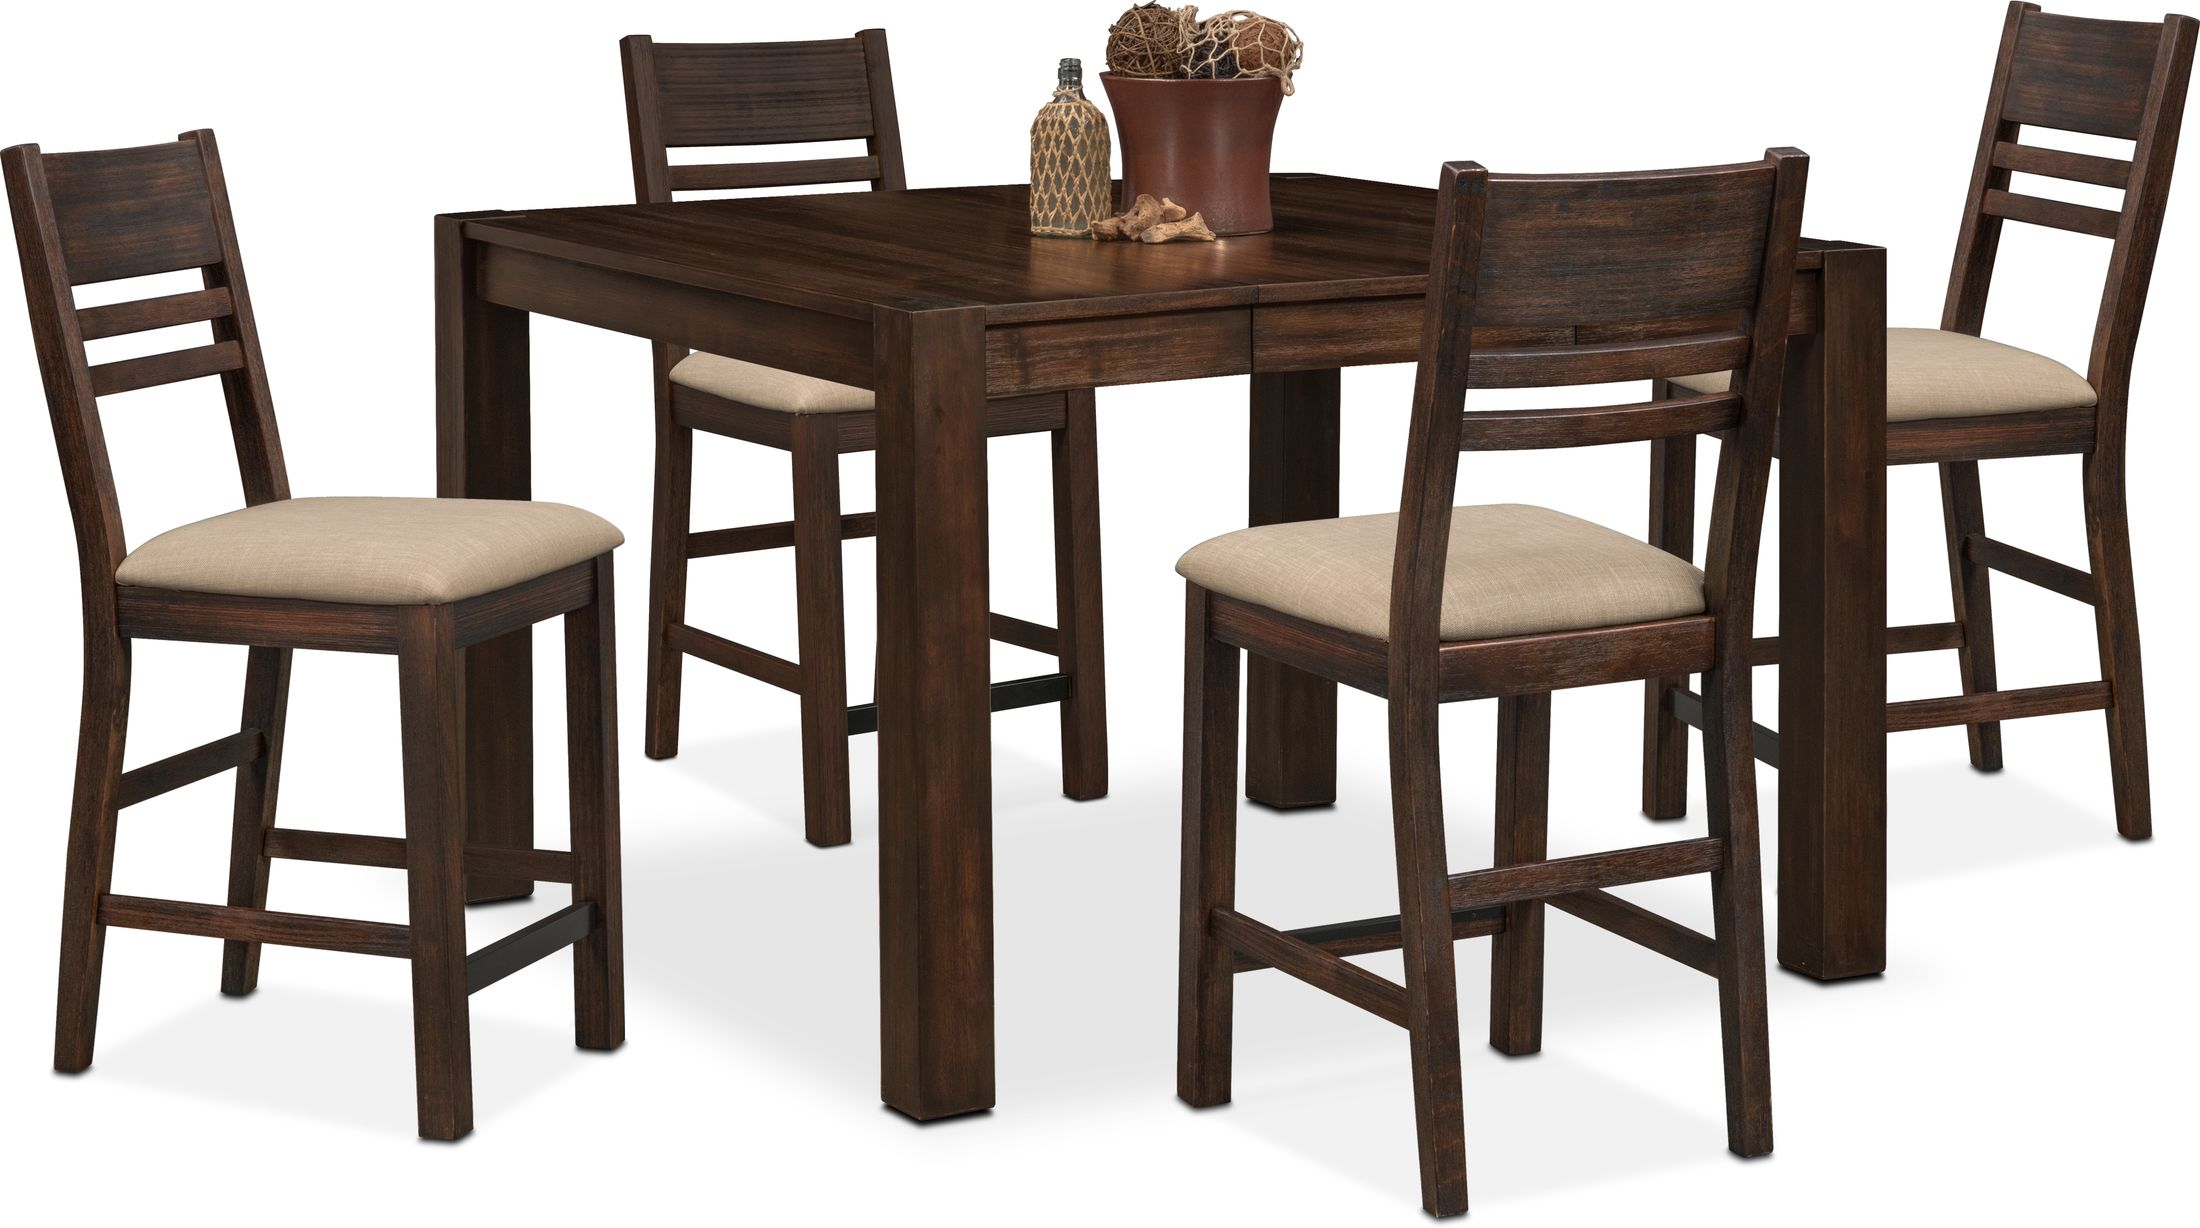 Dining Room Furniture - Tribeca Counter-Height Dining Table and 4 Dining Chairs